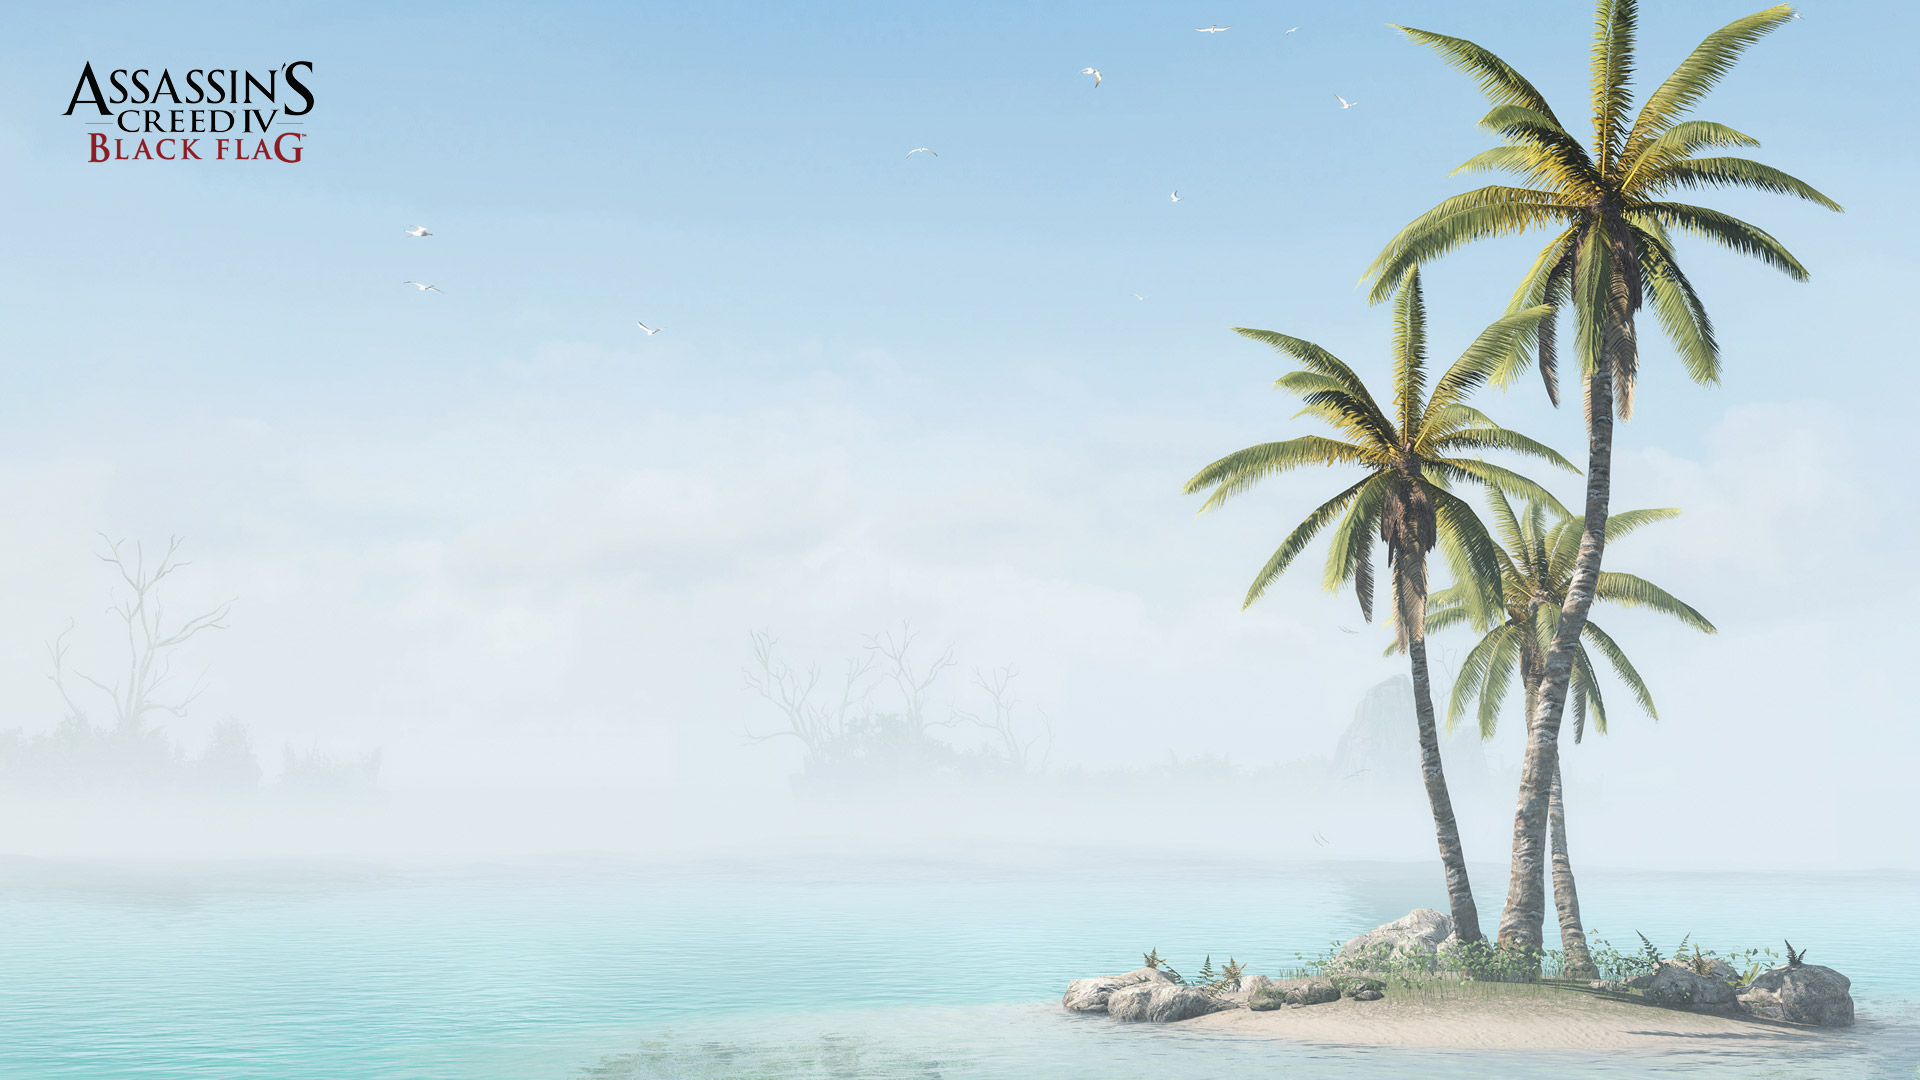 Assassin's Creed IV: Black Flag Wallpaper in 1920x1080